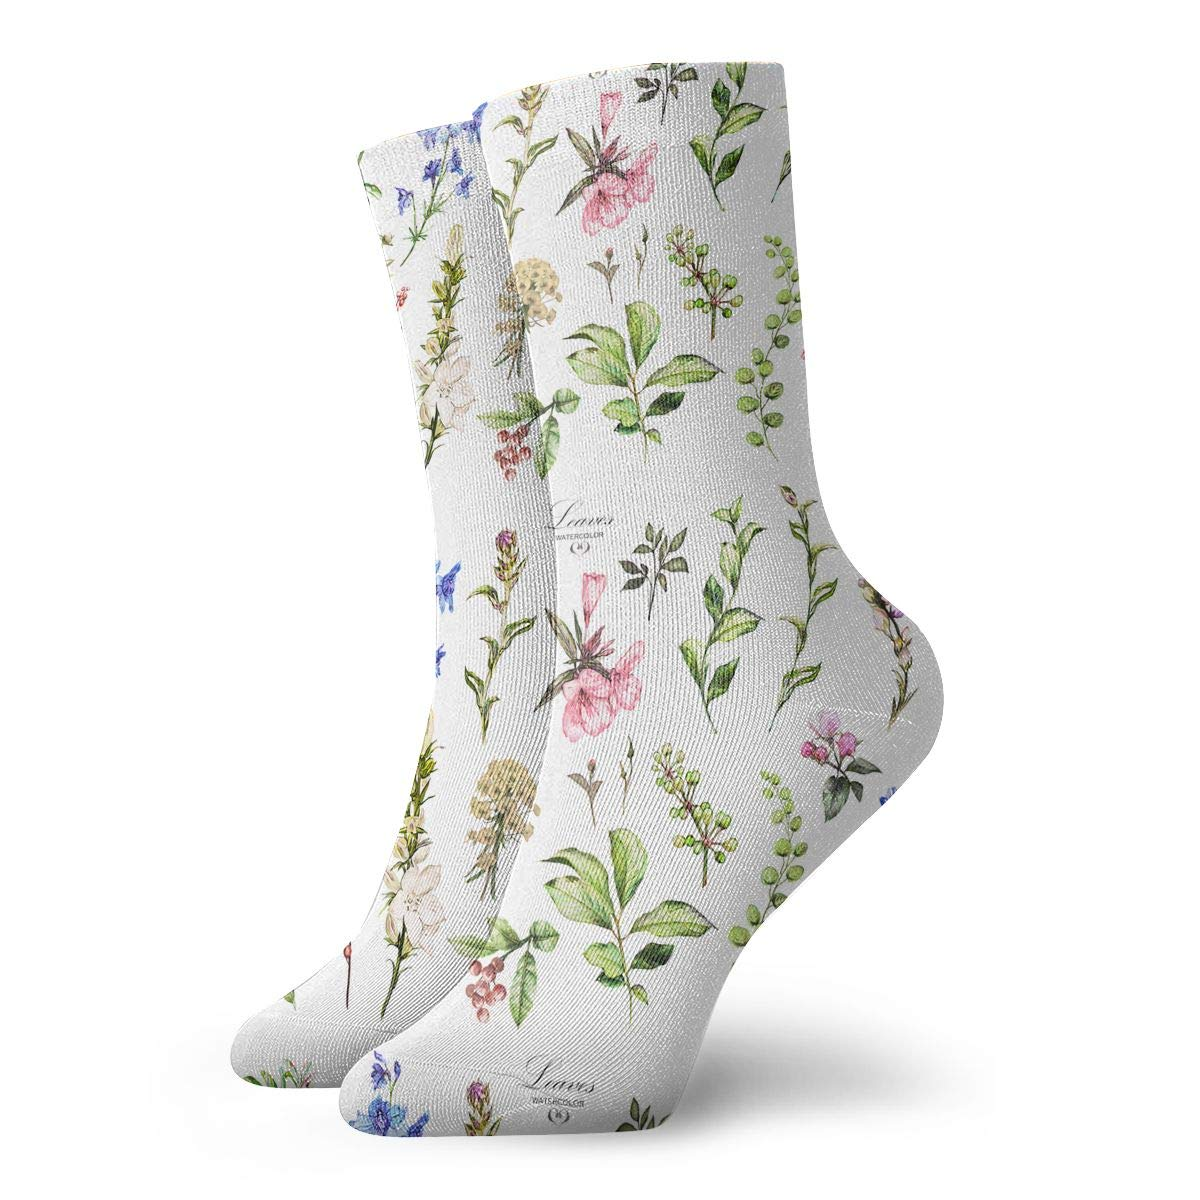 Watercolor Trees And Flowers Fashion Dress Socks Short Socks Leisure Travel 11.8 Inch